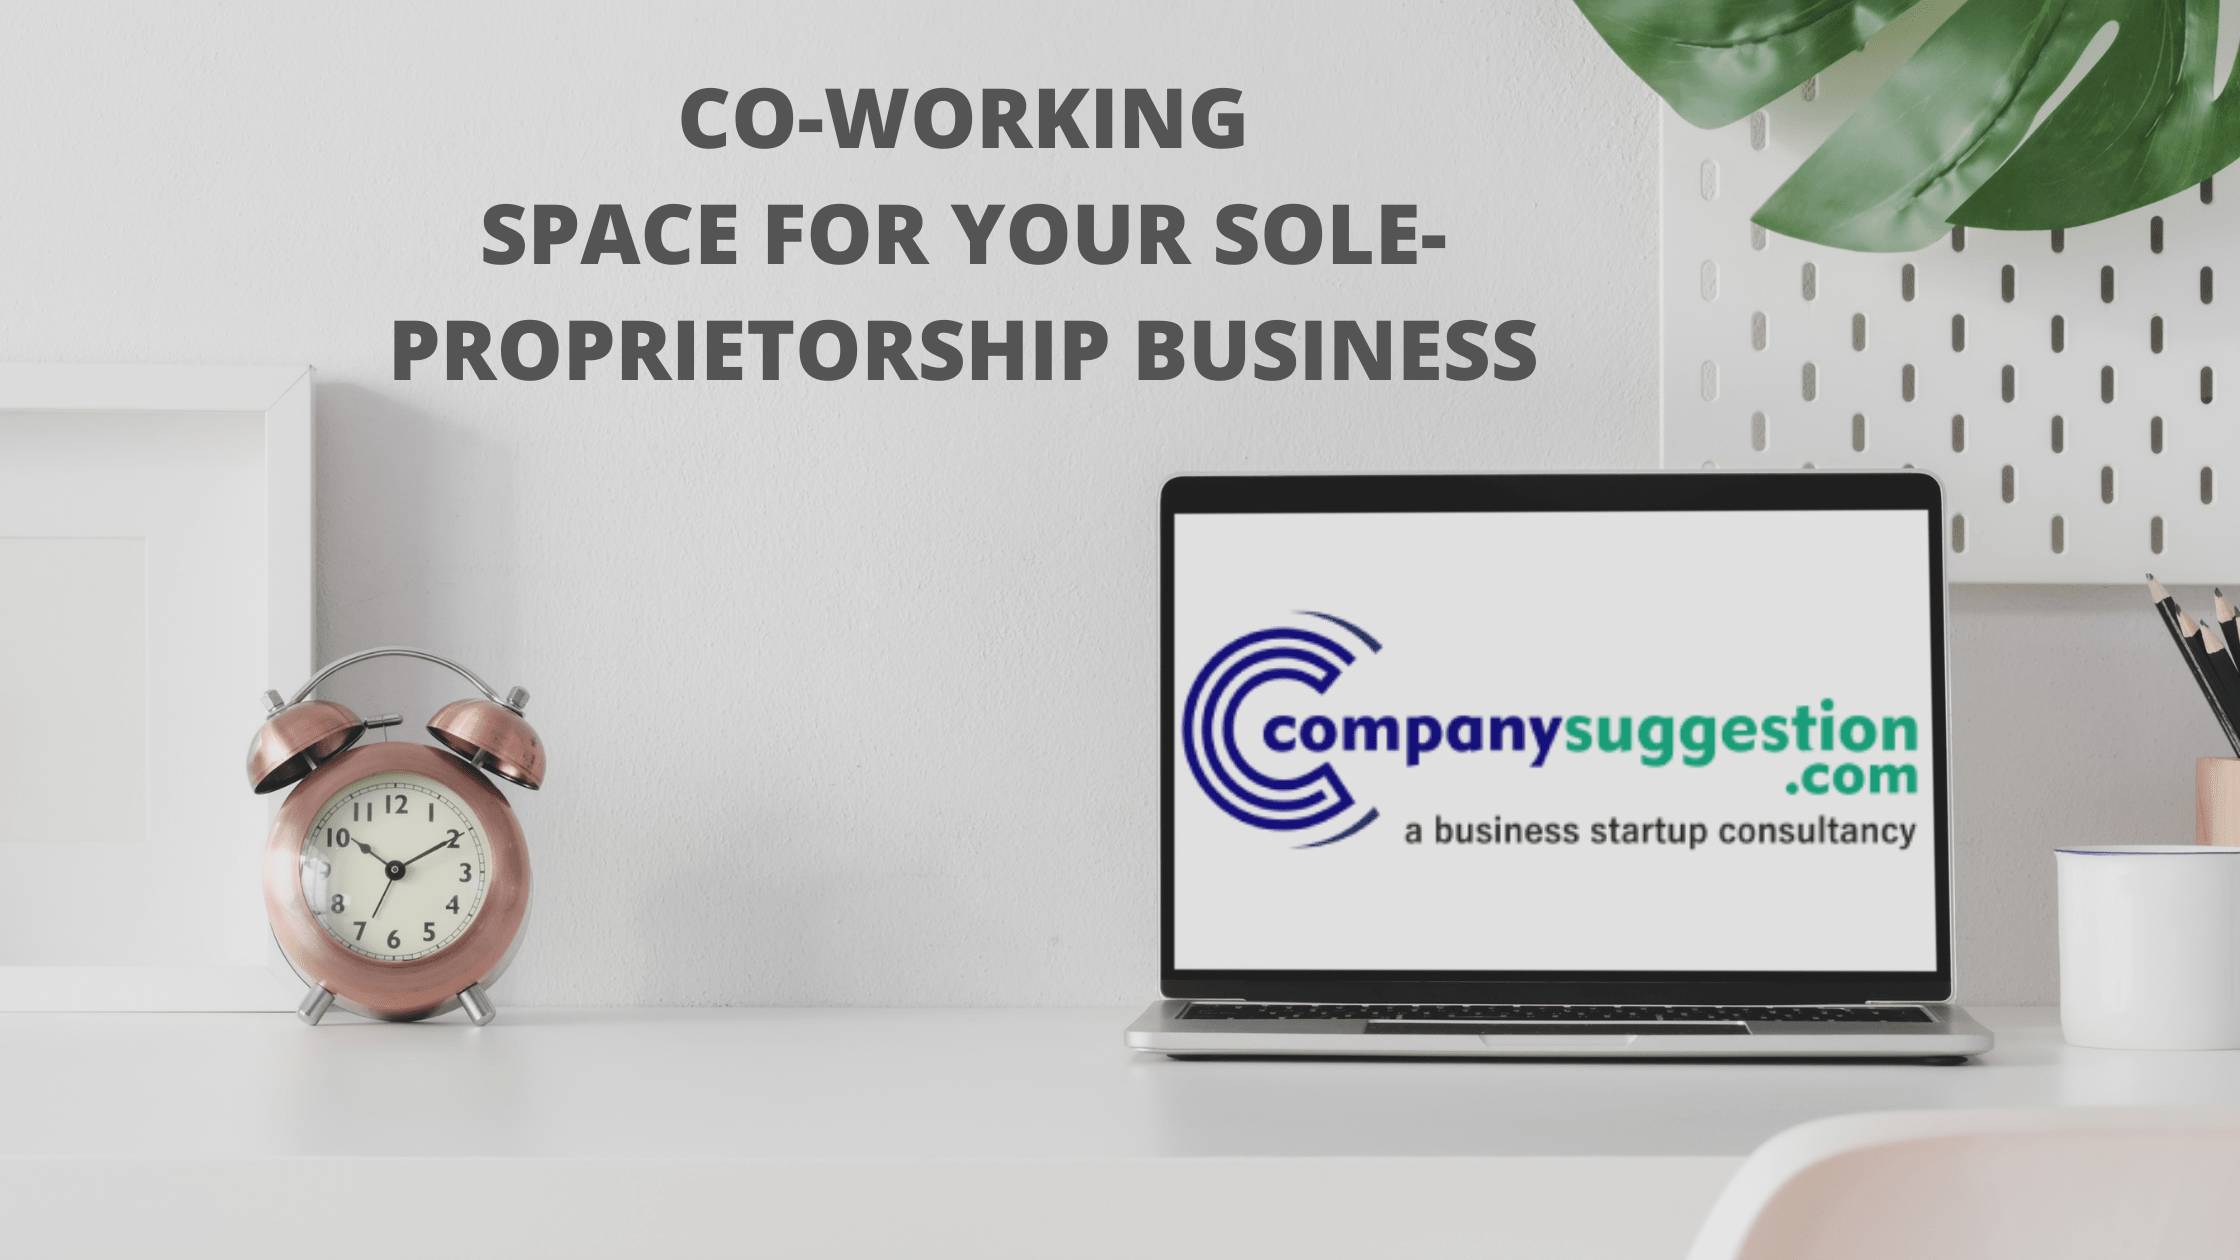 CO-WORKING SPACE FOR YOUR SOLE-PROPRIETORSHIP BUSINESS